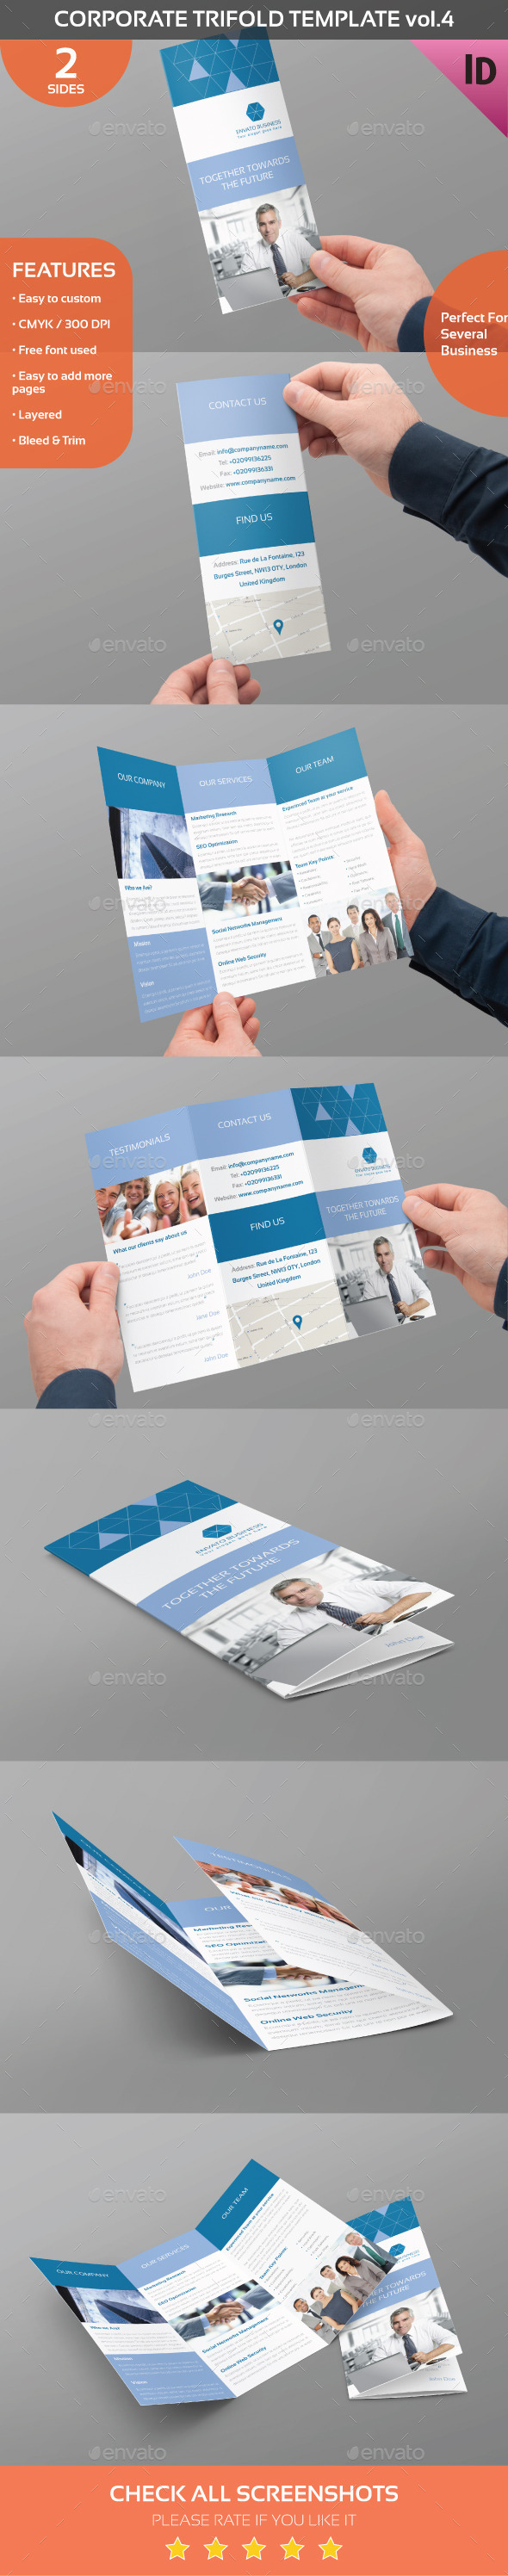 Corporate Trifold Template Vol.4 - Corporate Brochures